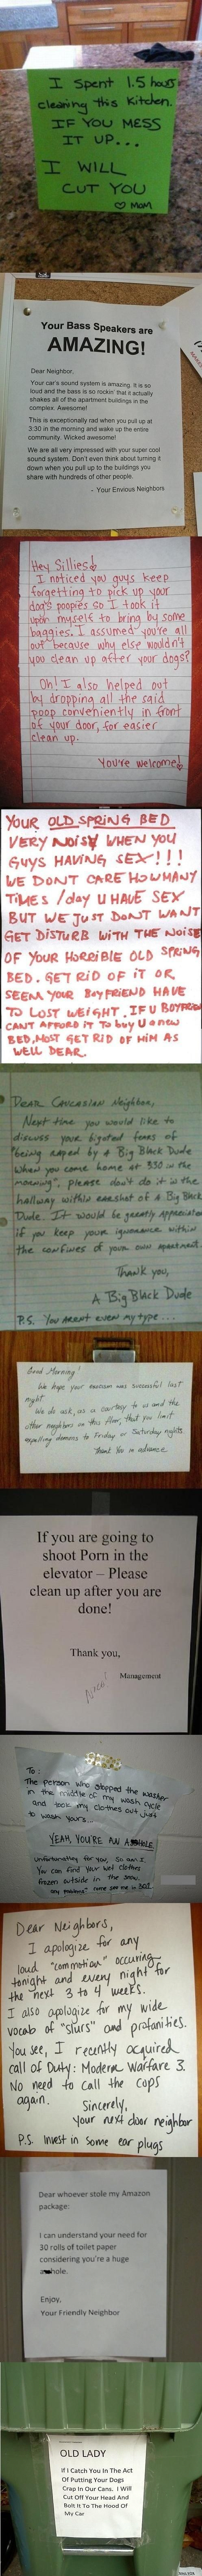 Passive aggressively AWESOME